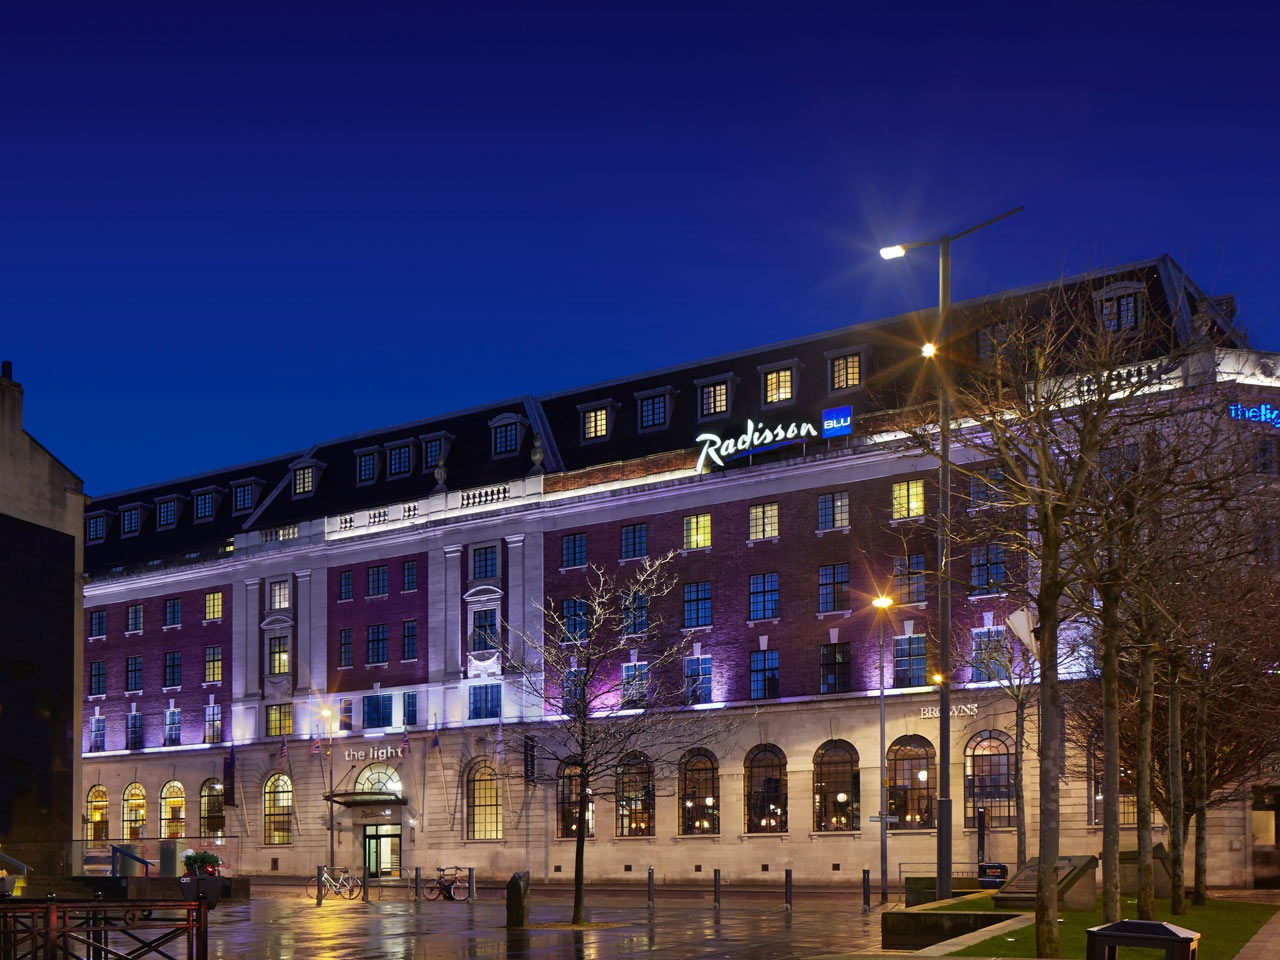 Radisson blu leeds review hotel designs for Radisson hotel